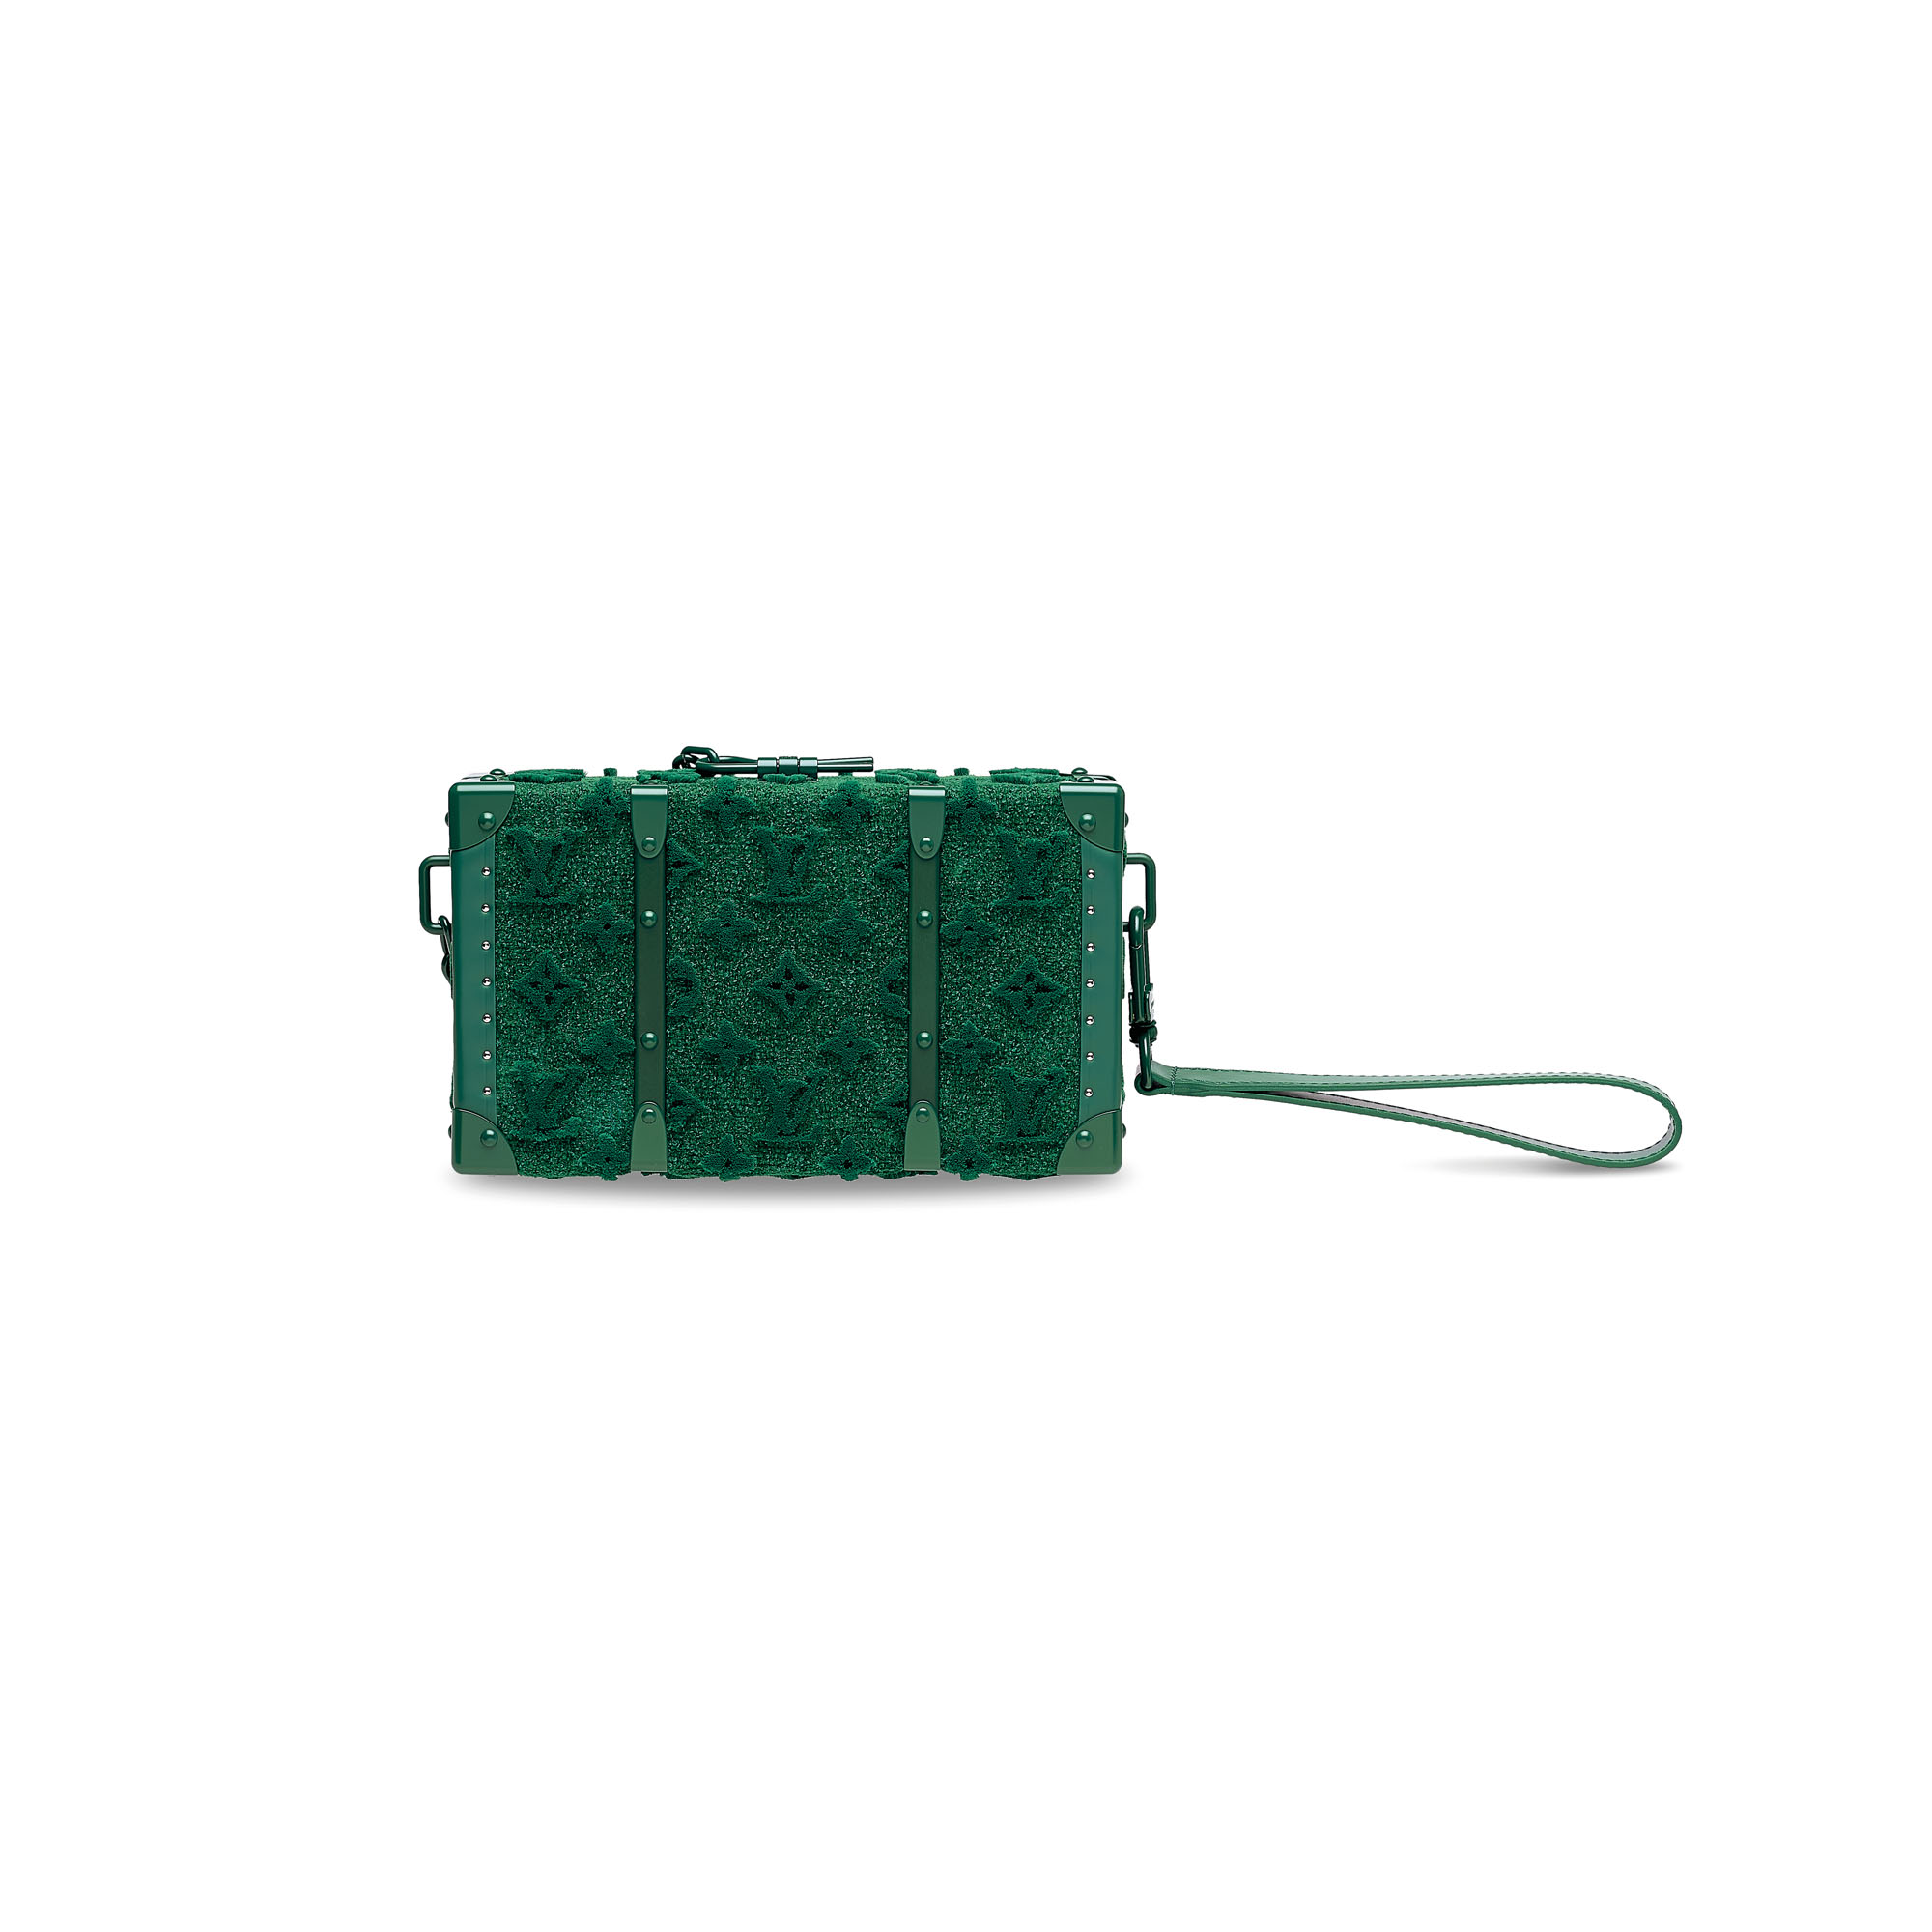 A LIMITED EDITION GREEN TUFFETAGE MONOGRAM WALLET TRUNK WITH GREEN HARDWARE BY VIRGIL ABLOH